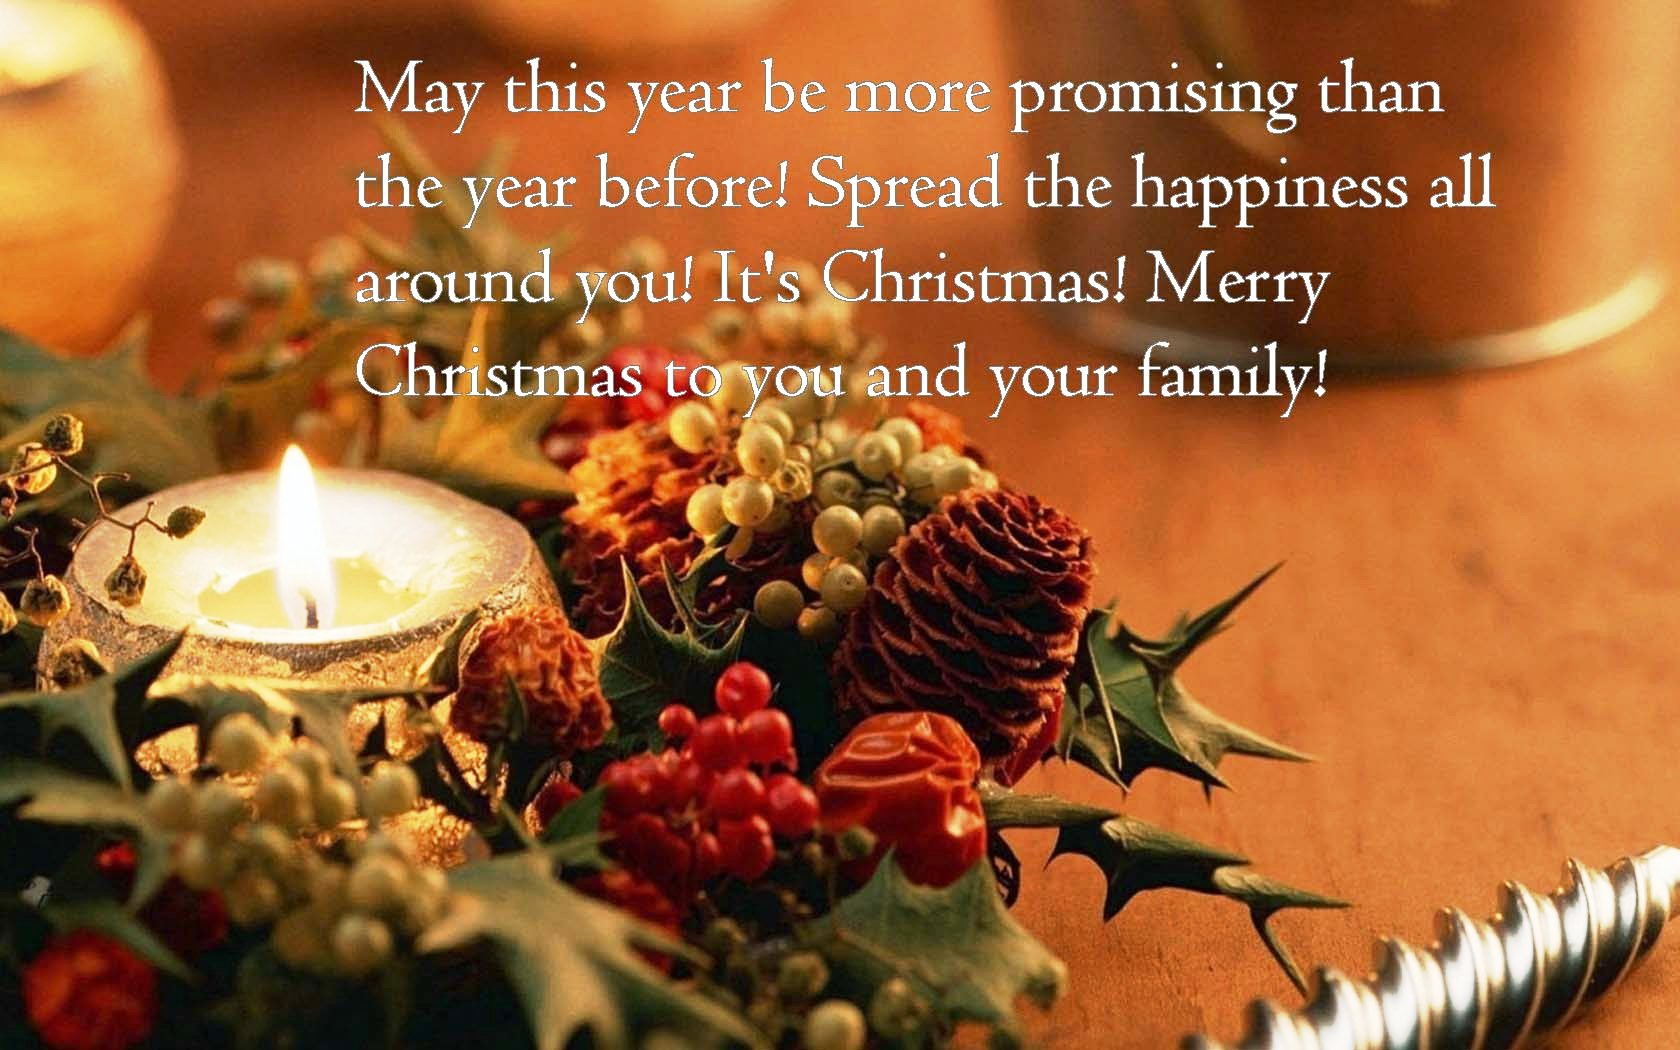 Merry Christmas Wallpaper Quotes HD